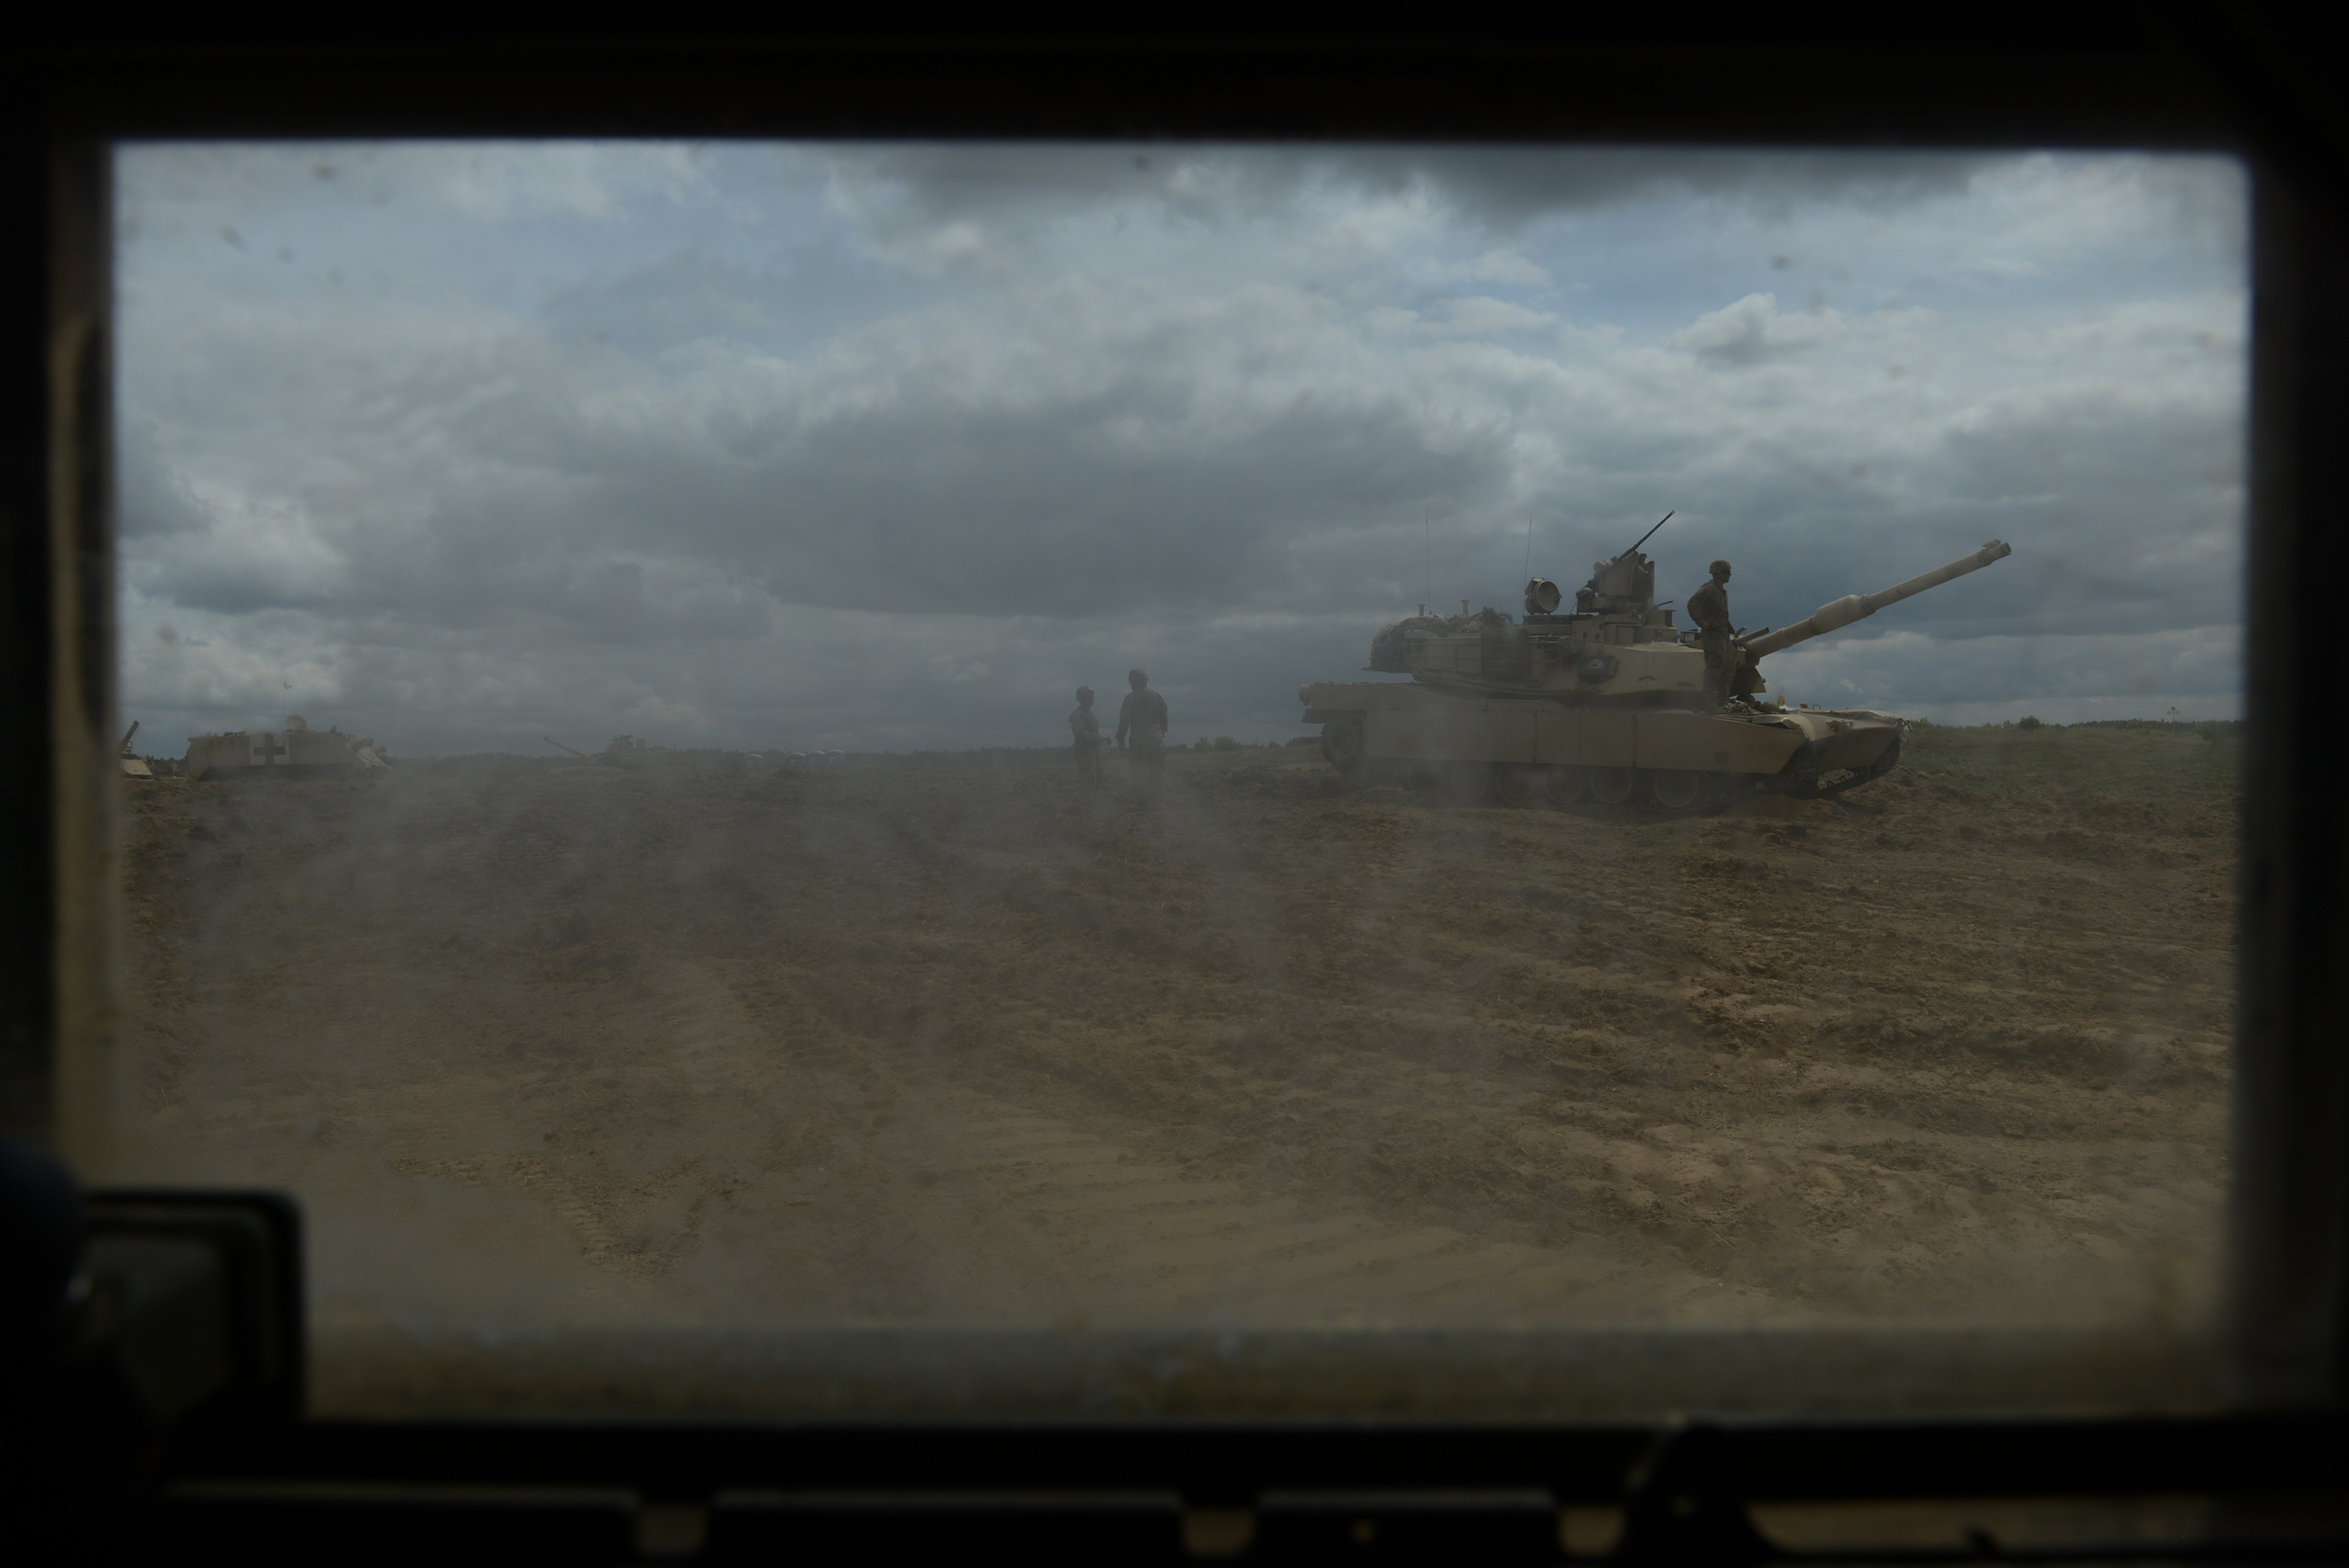 American soldiers with the Second Battalion, Seventh Infantry Regiment, Third Infantry Division based out of Fort Stewart, Georgia in an American Abrams M1A2 tank in position for a live fire exercise as seen through the window of a Humvee at the Drawsko Pomorskie Training Area in Poland on June 16, 2015.